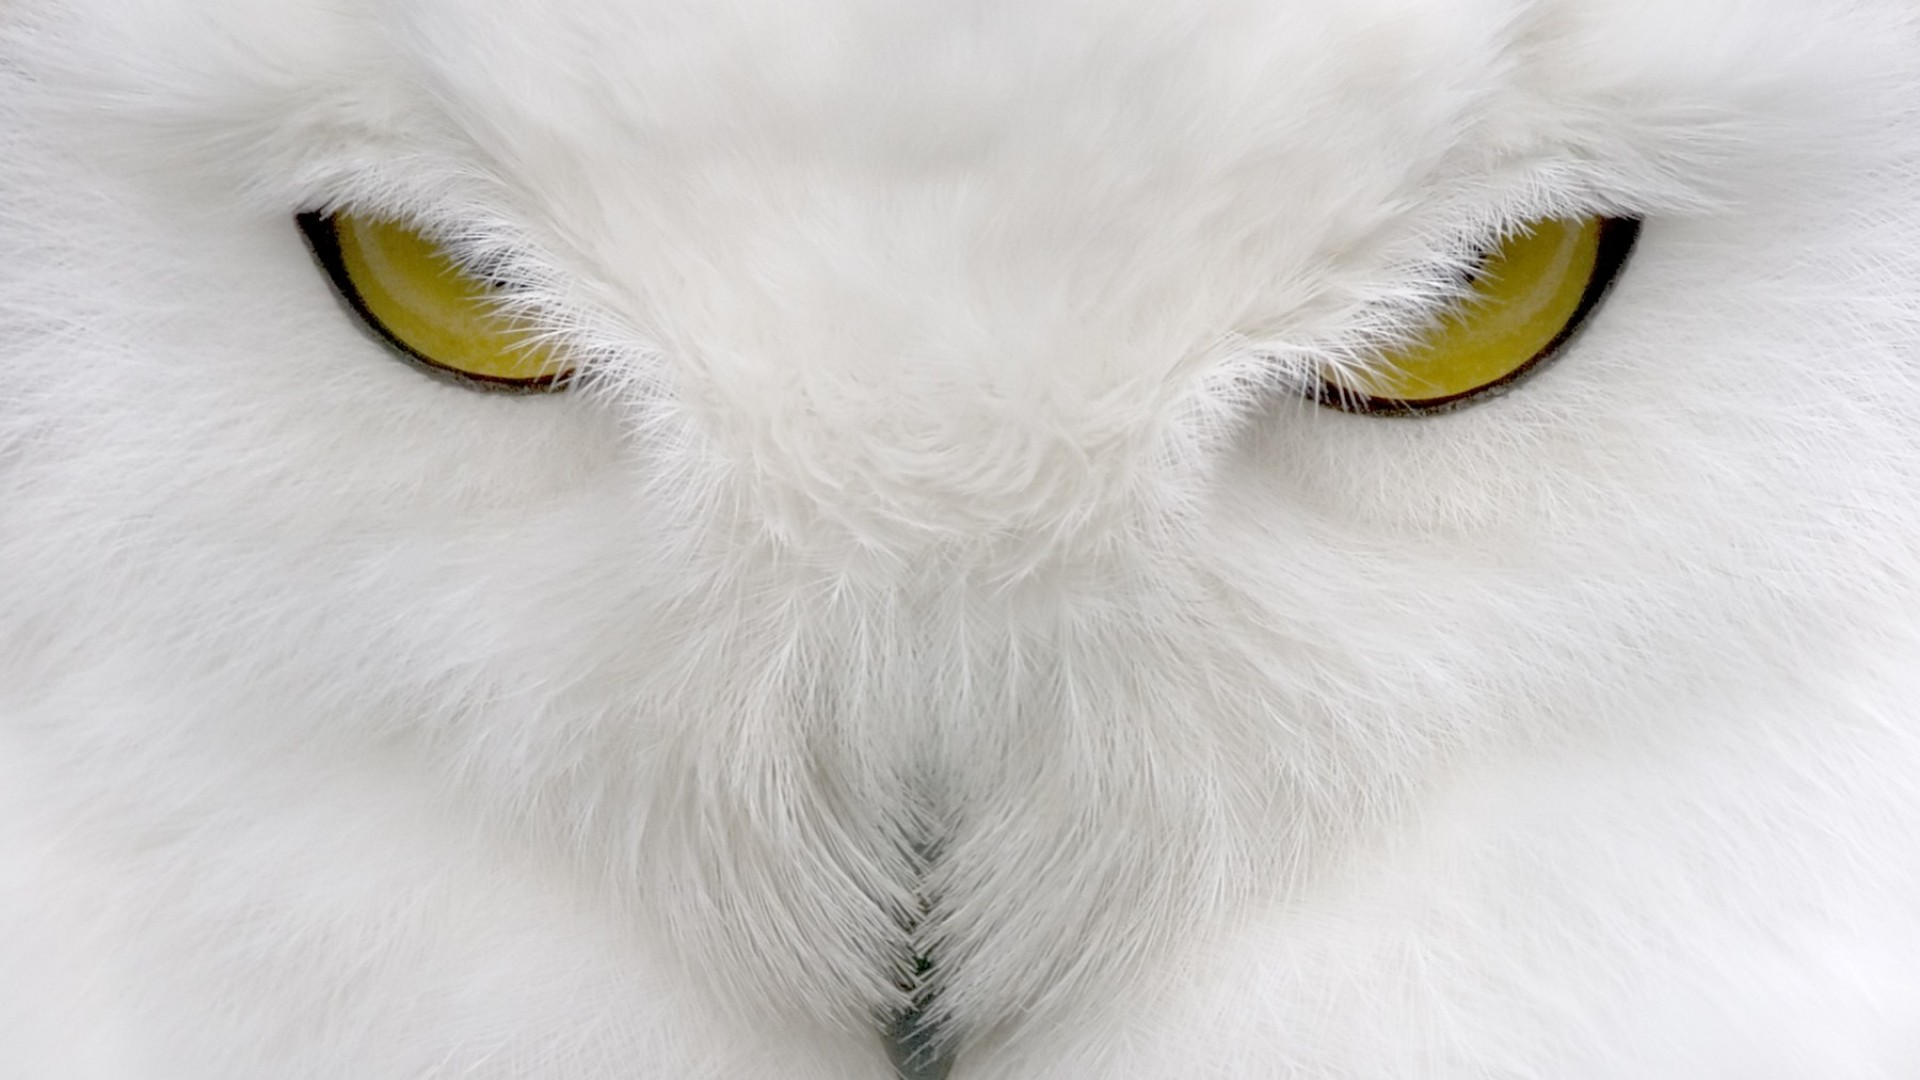 White Owl Wallpapers High Quality | Download Free